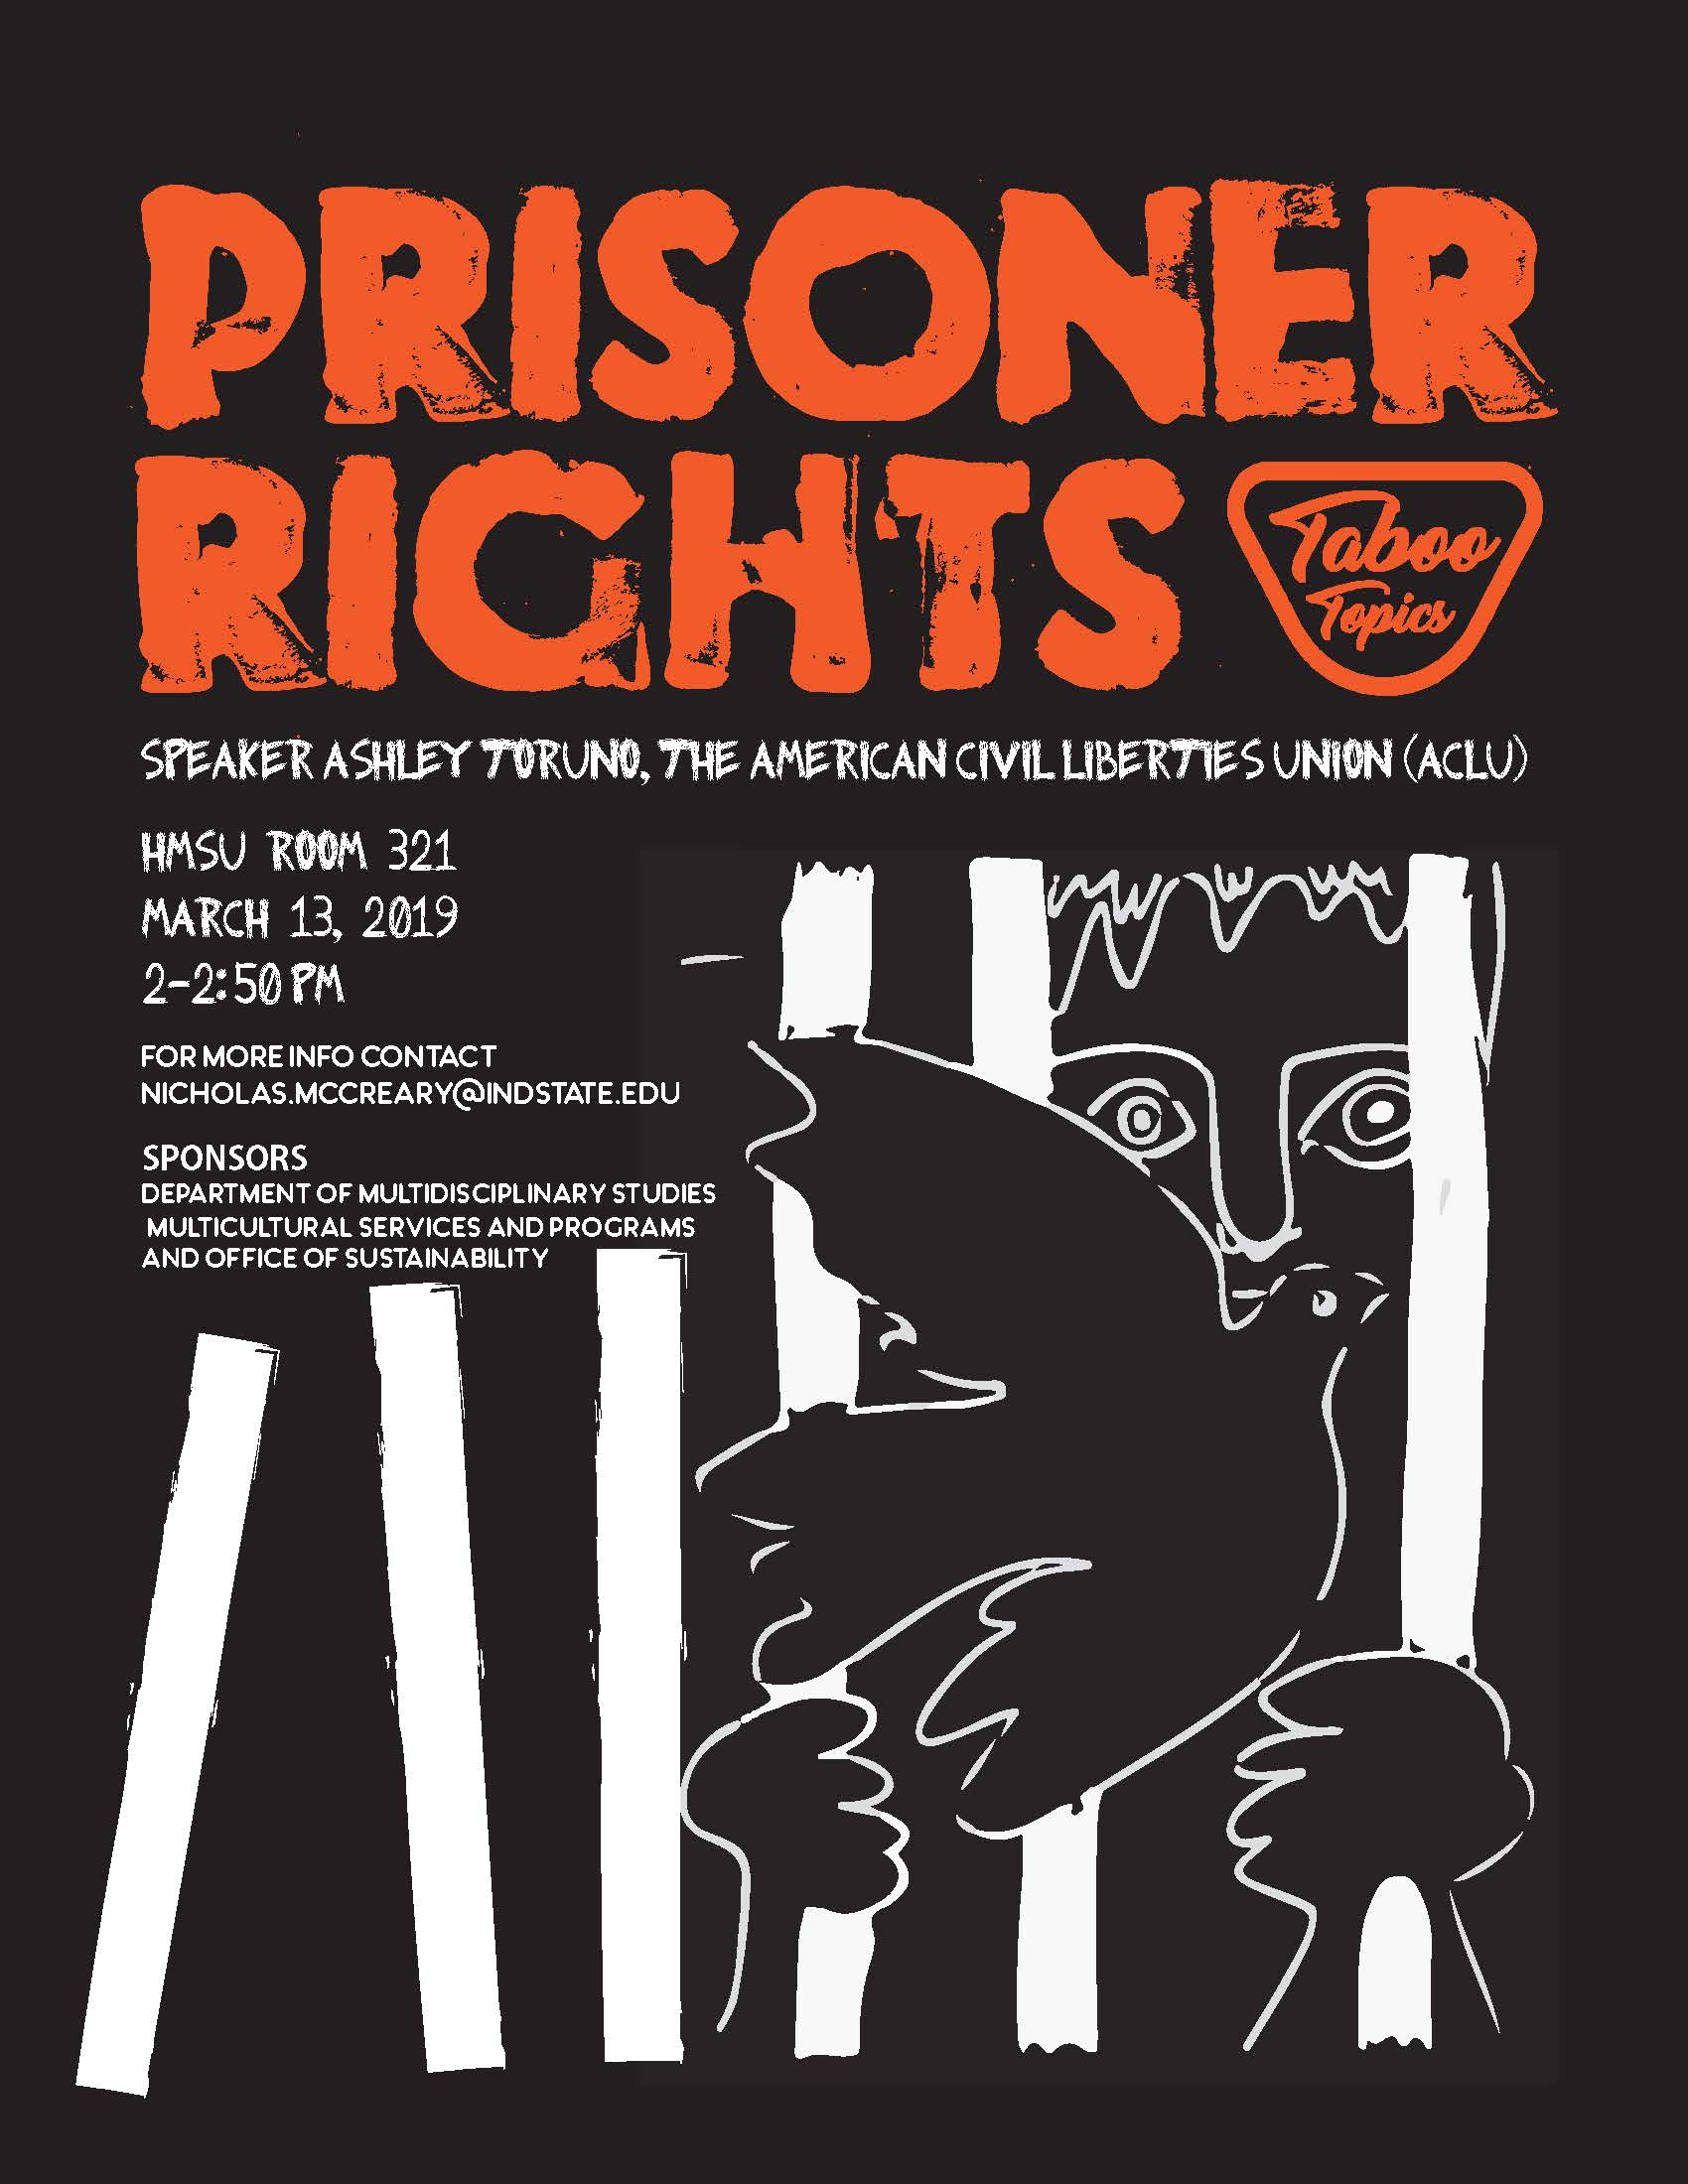 taboo-topic-prisoner-rights-march-2019.jpg